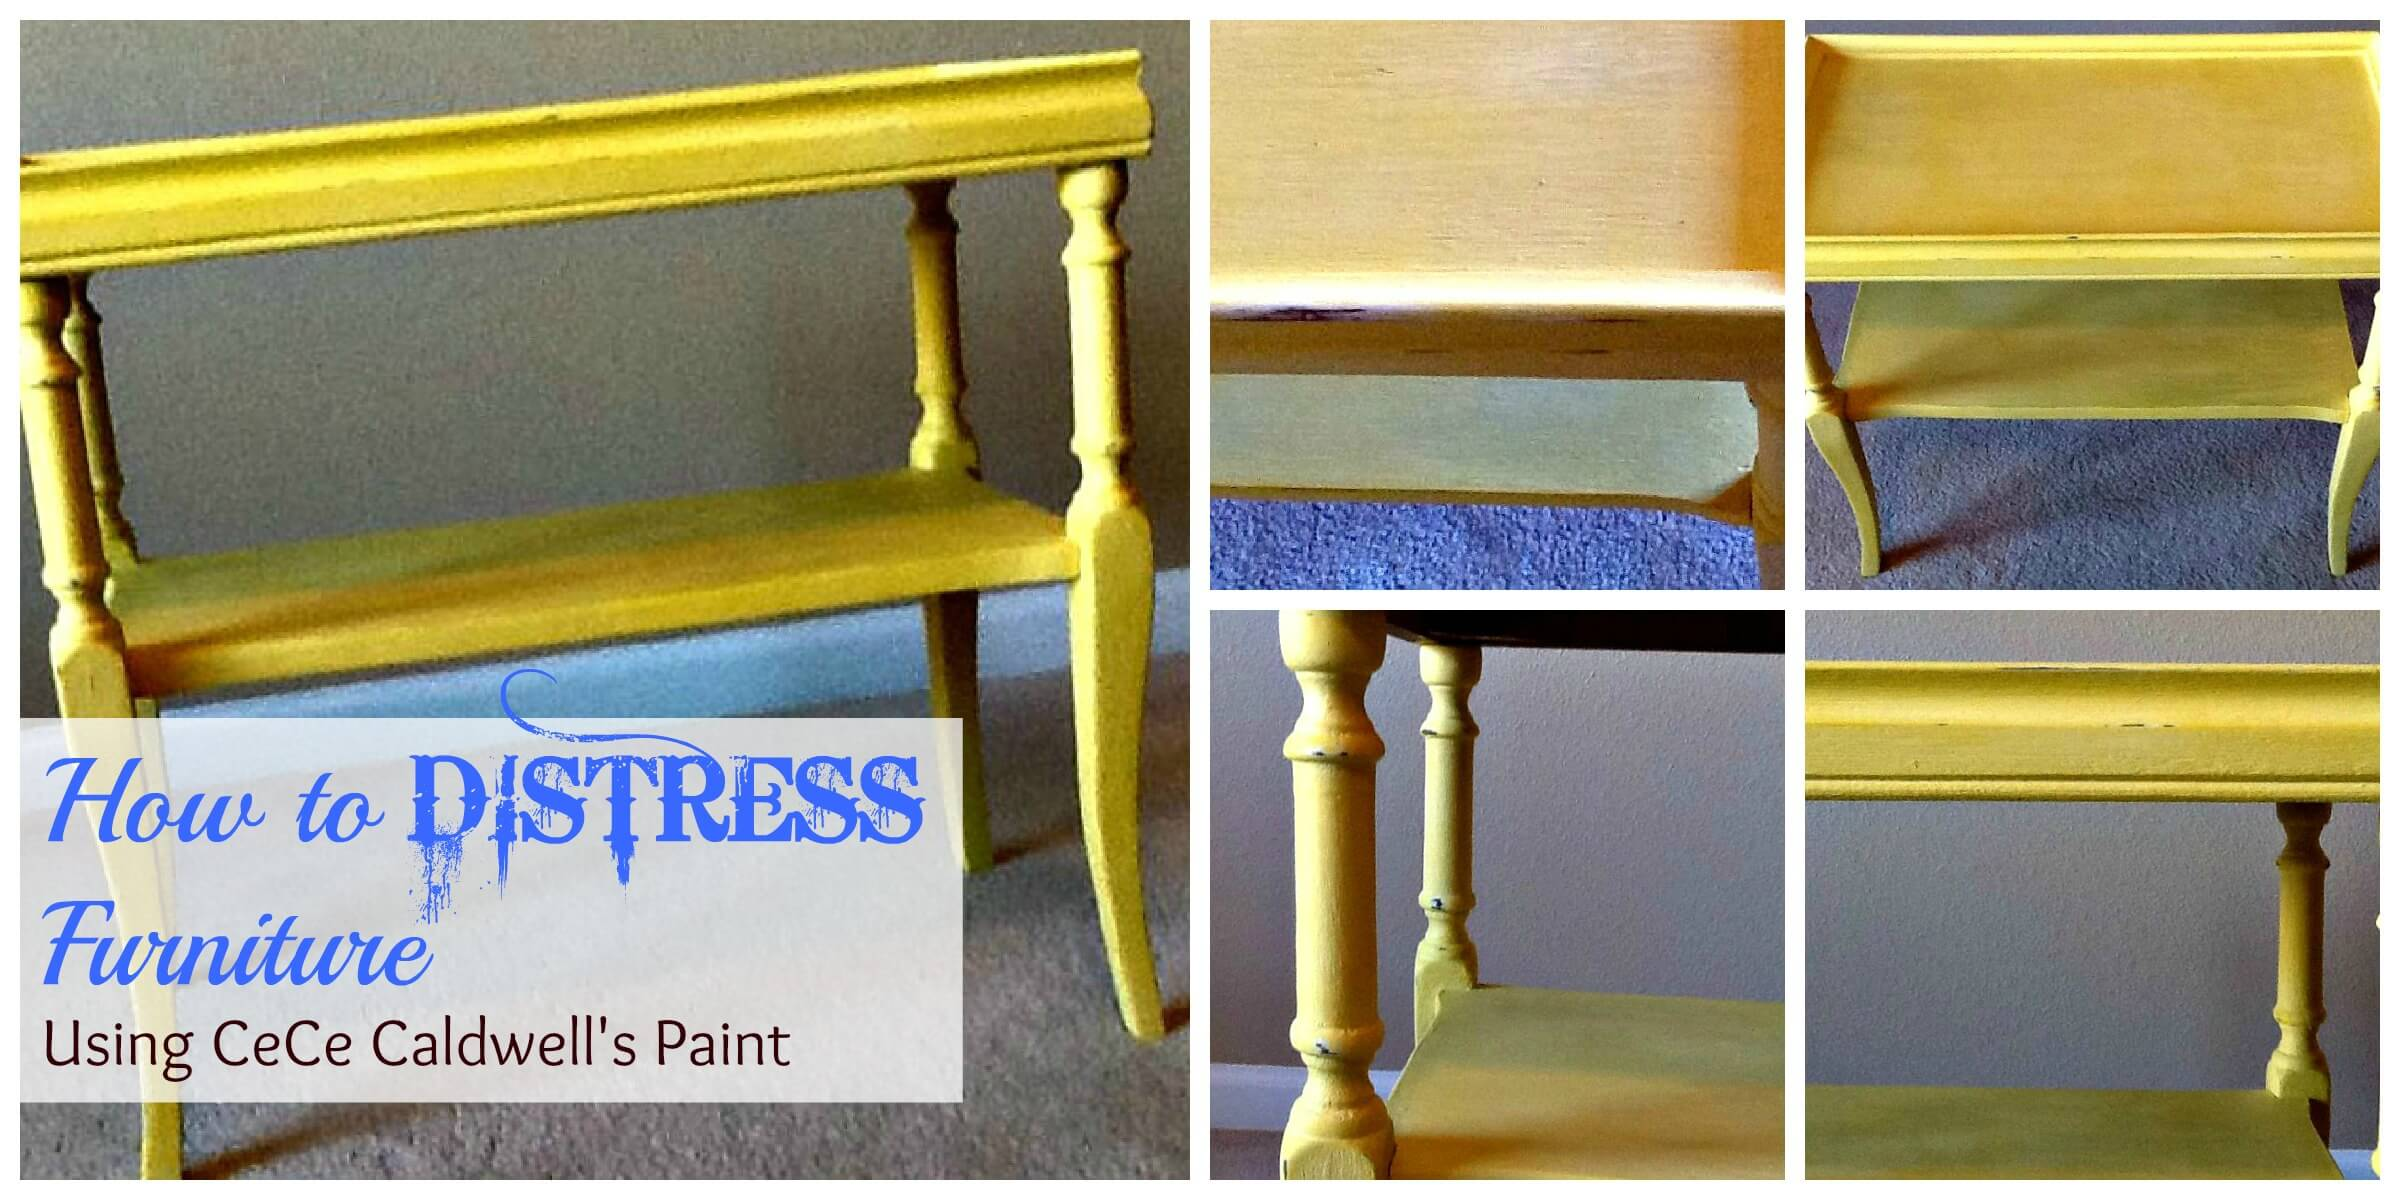 How to distress furniture | My Breezy Room